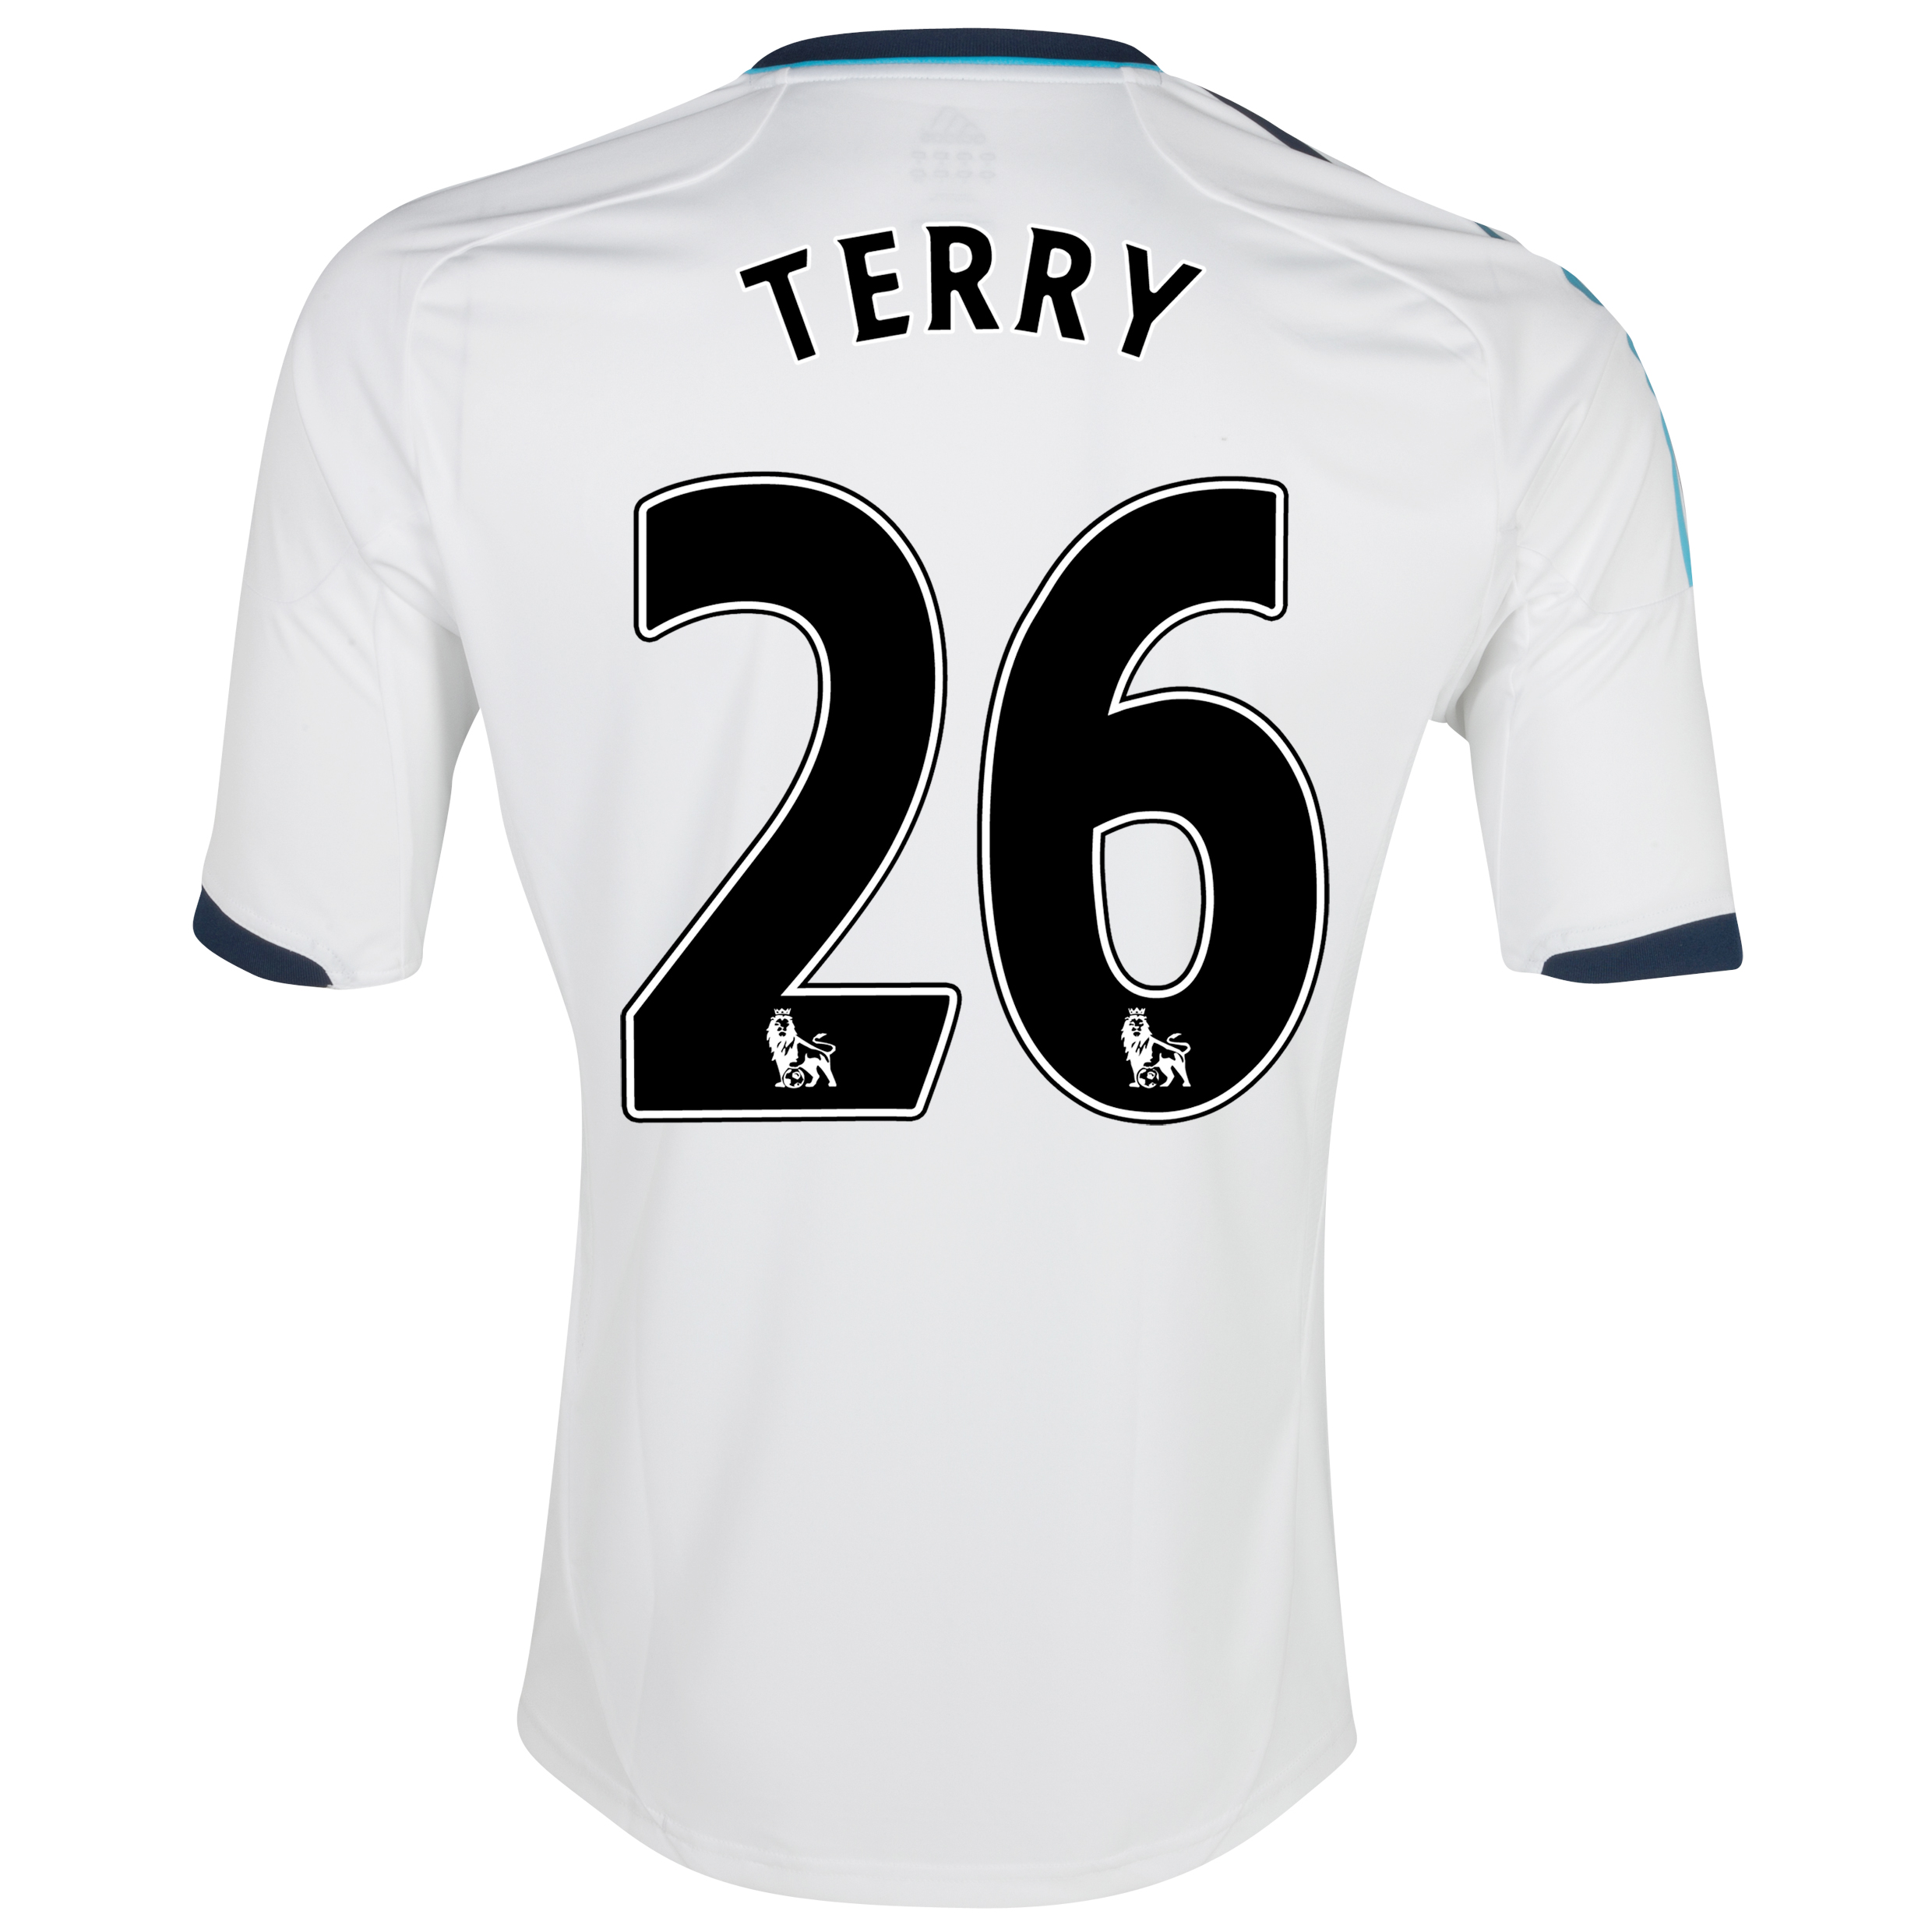 Chelsea Away Shirt 2012/13 - Kids with Terry 26 printing